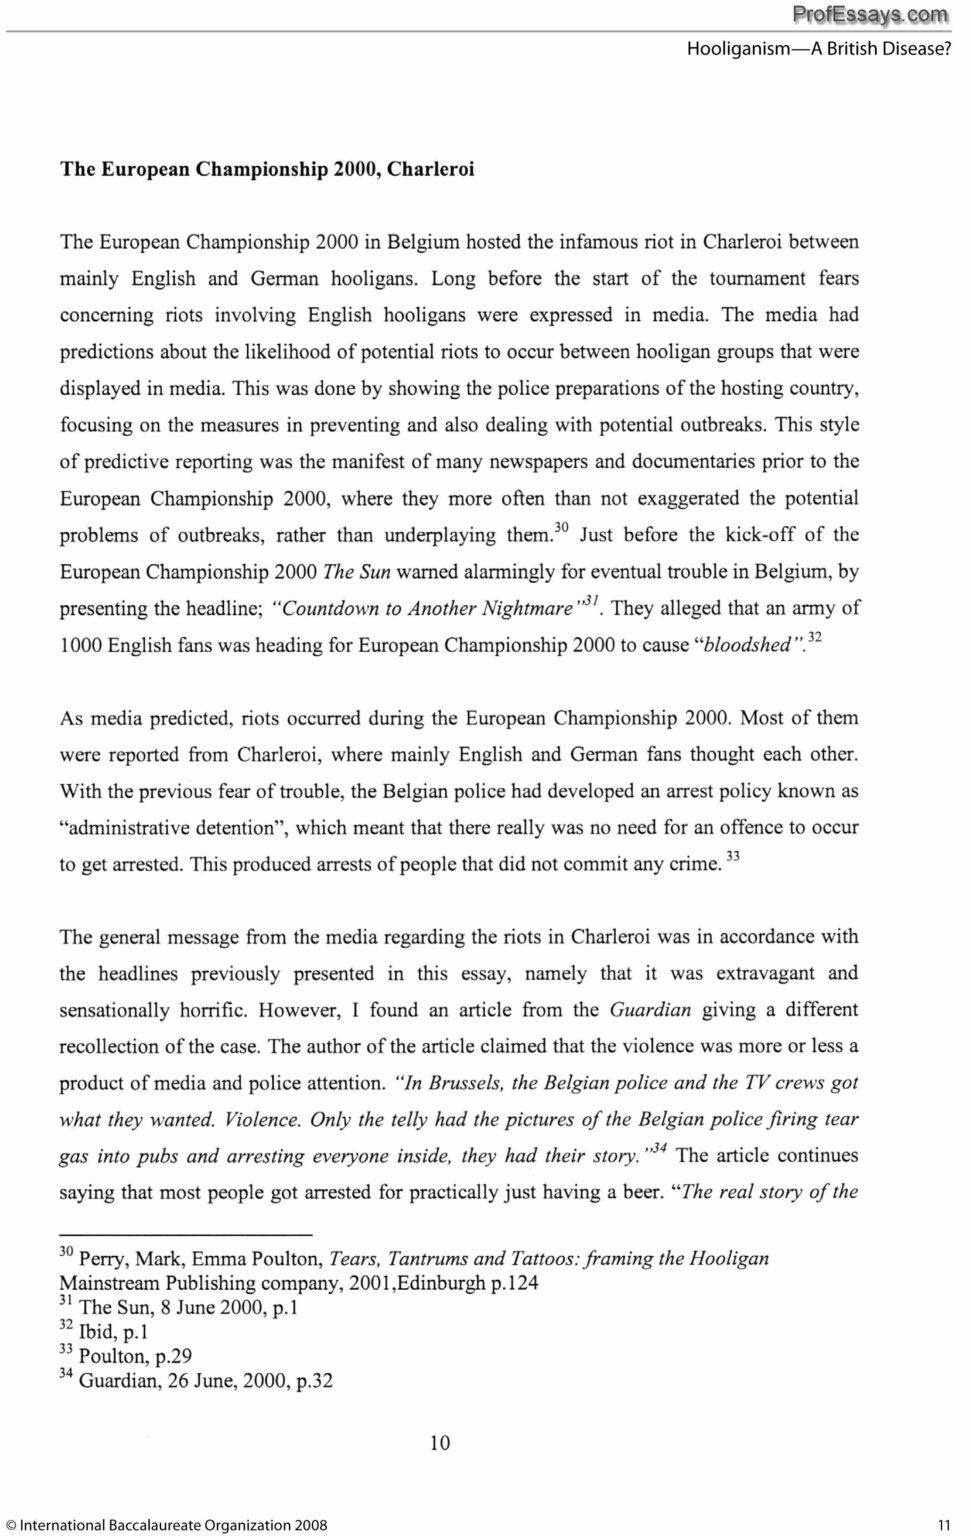 Large Size of How To Write A Book Title In An Essay Uk